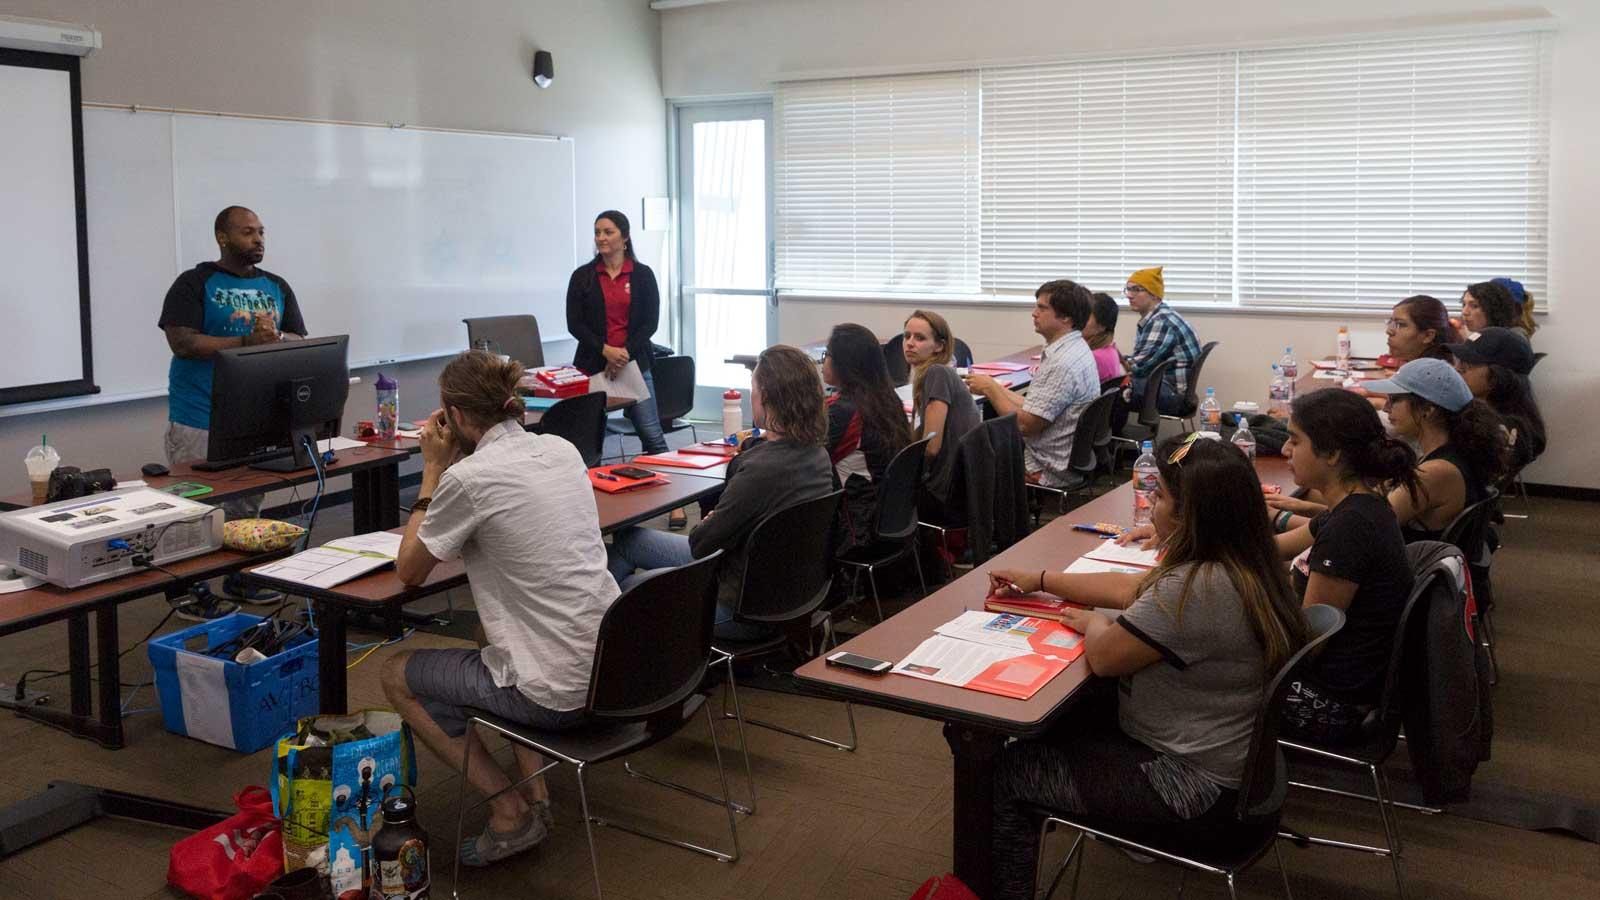 CSUCI offers leadership education through workshops and one-on-one advising